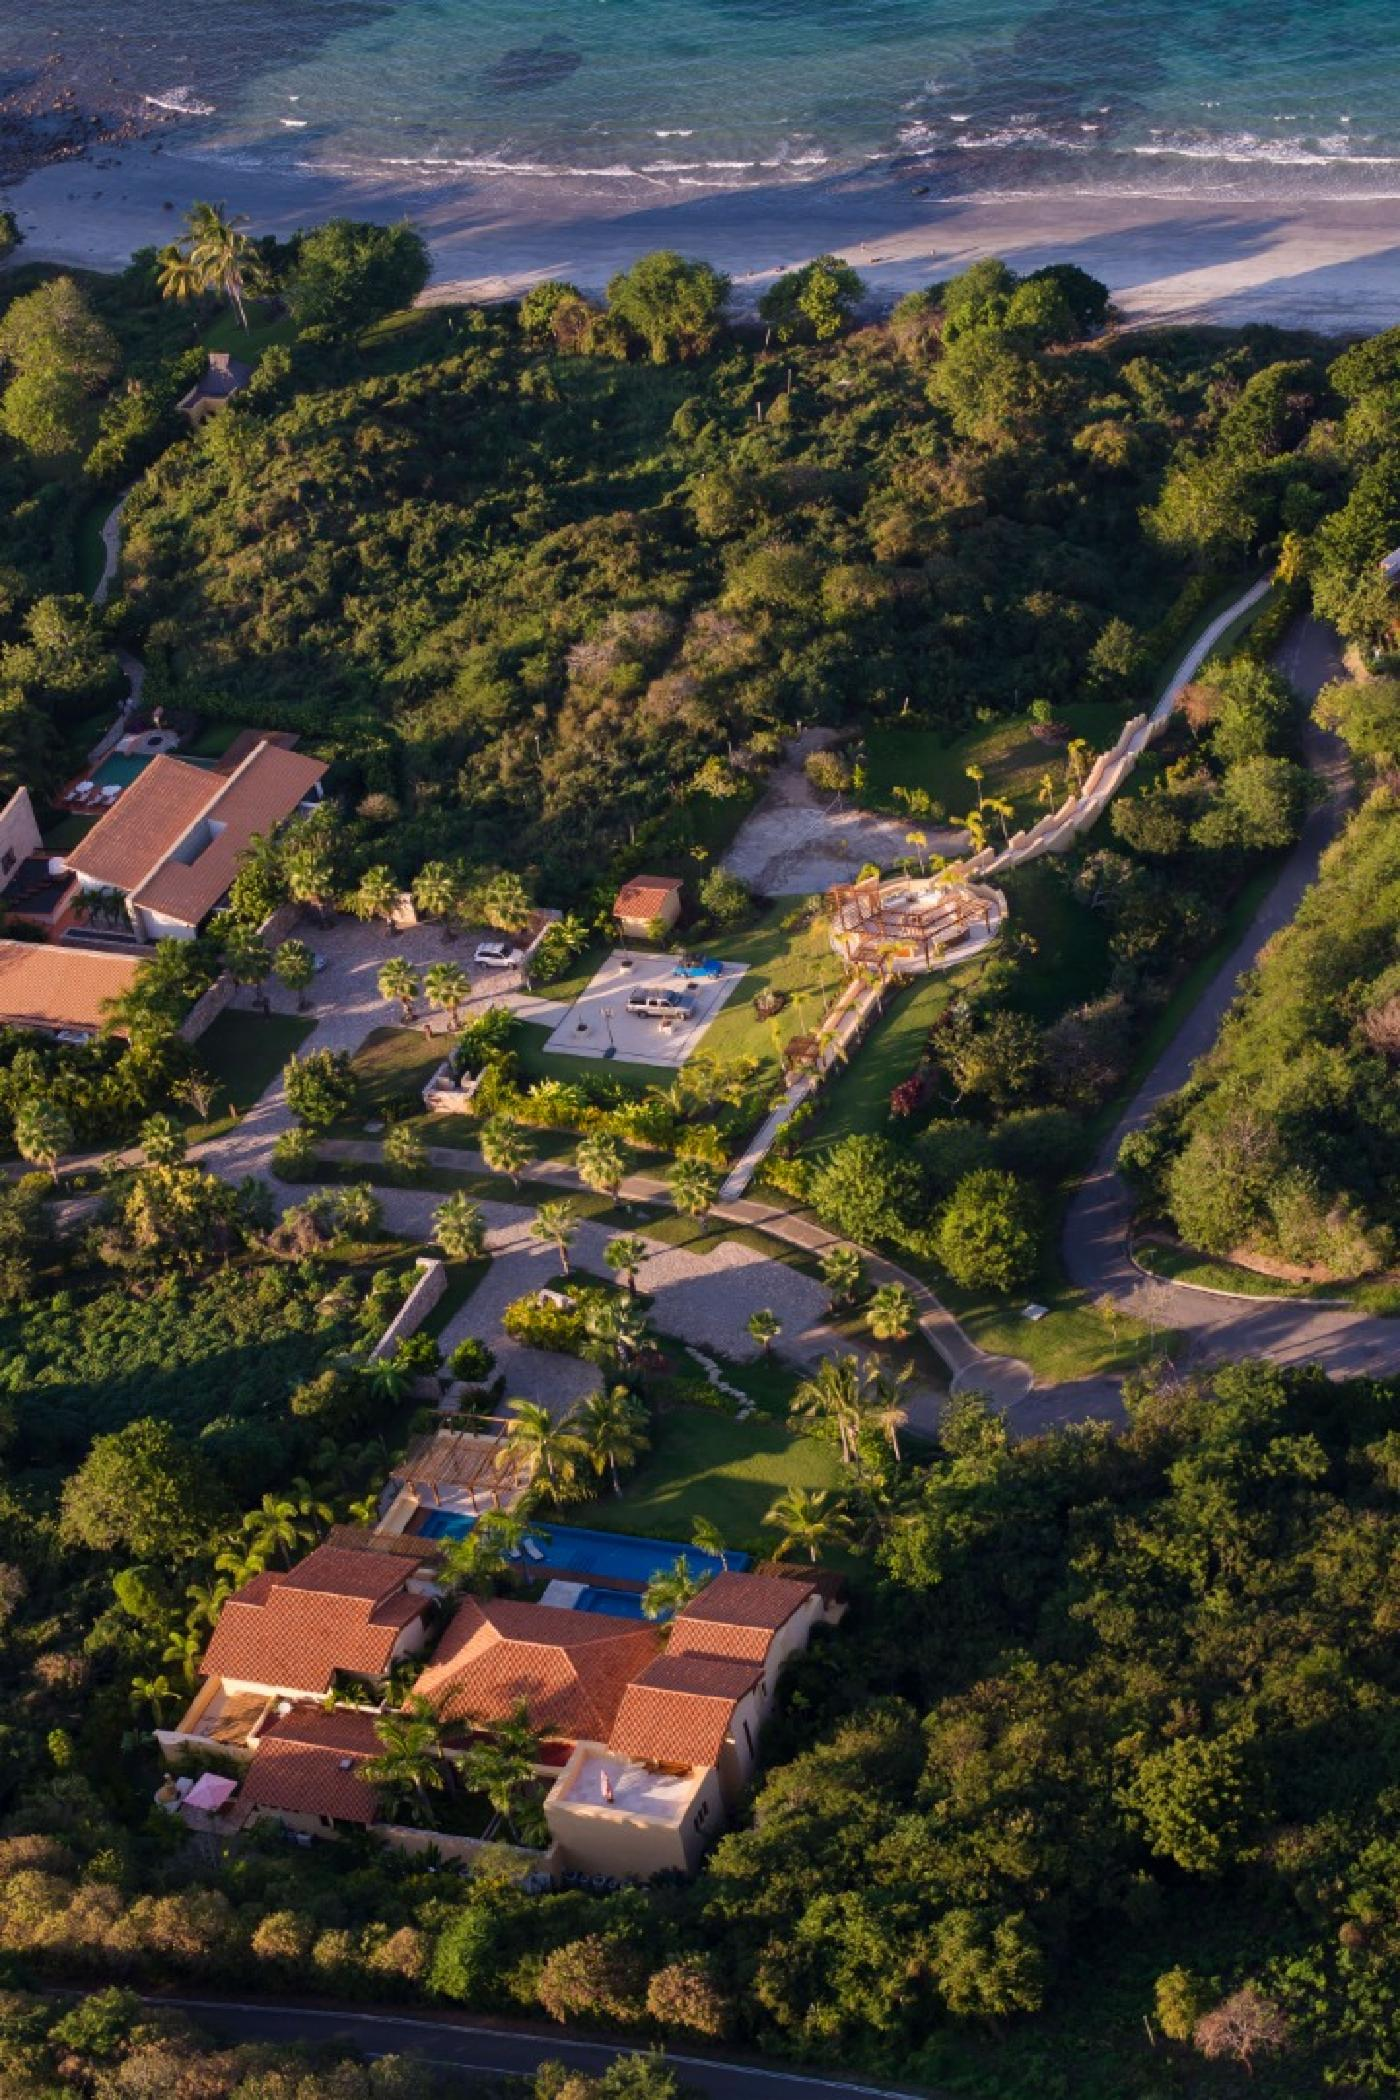 The unique property spills from the hillside through a garden, down to the beach.